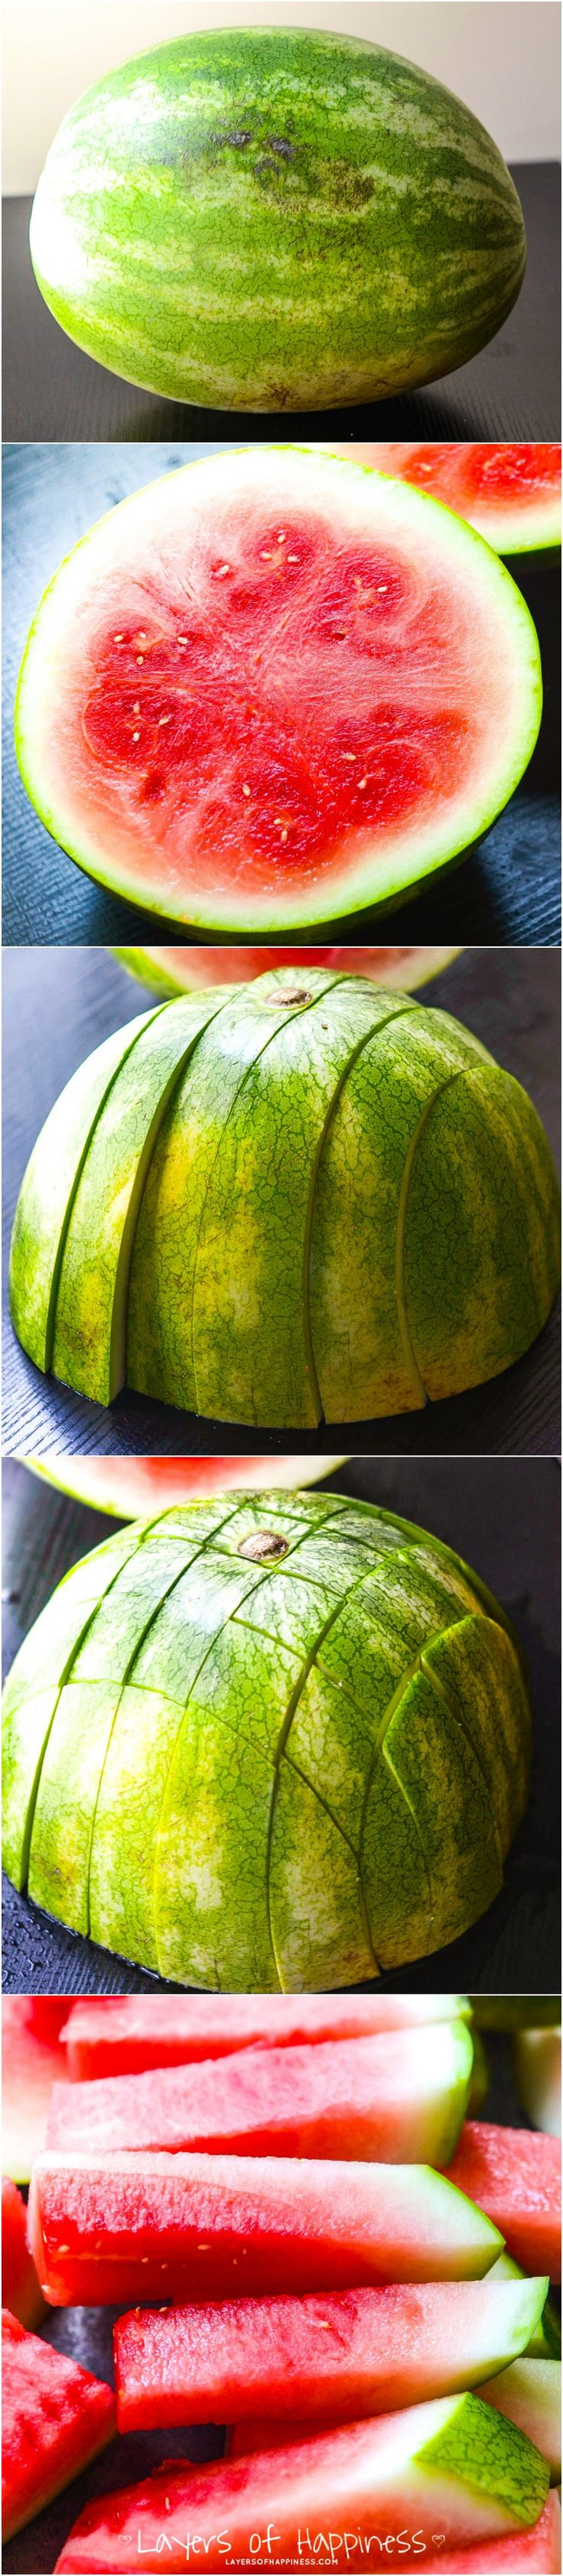 Best 25+ Cutting A Watermelon Ideas On Pinterest  Cut Watermelon Easy,  Watermelon Ideas And Summer Finger Foods